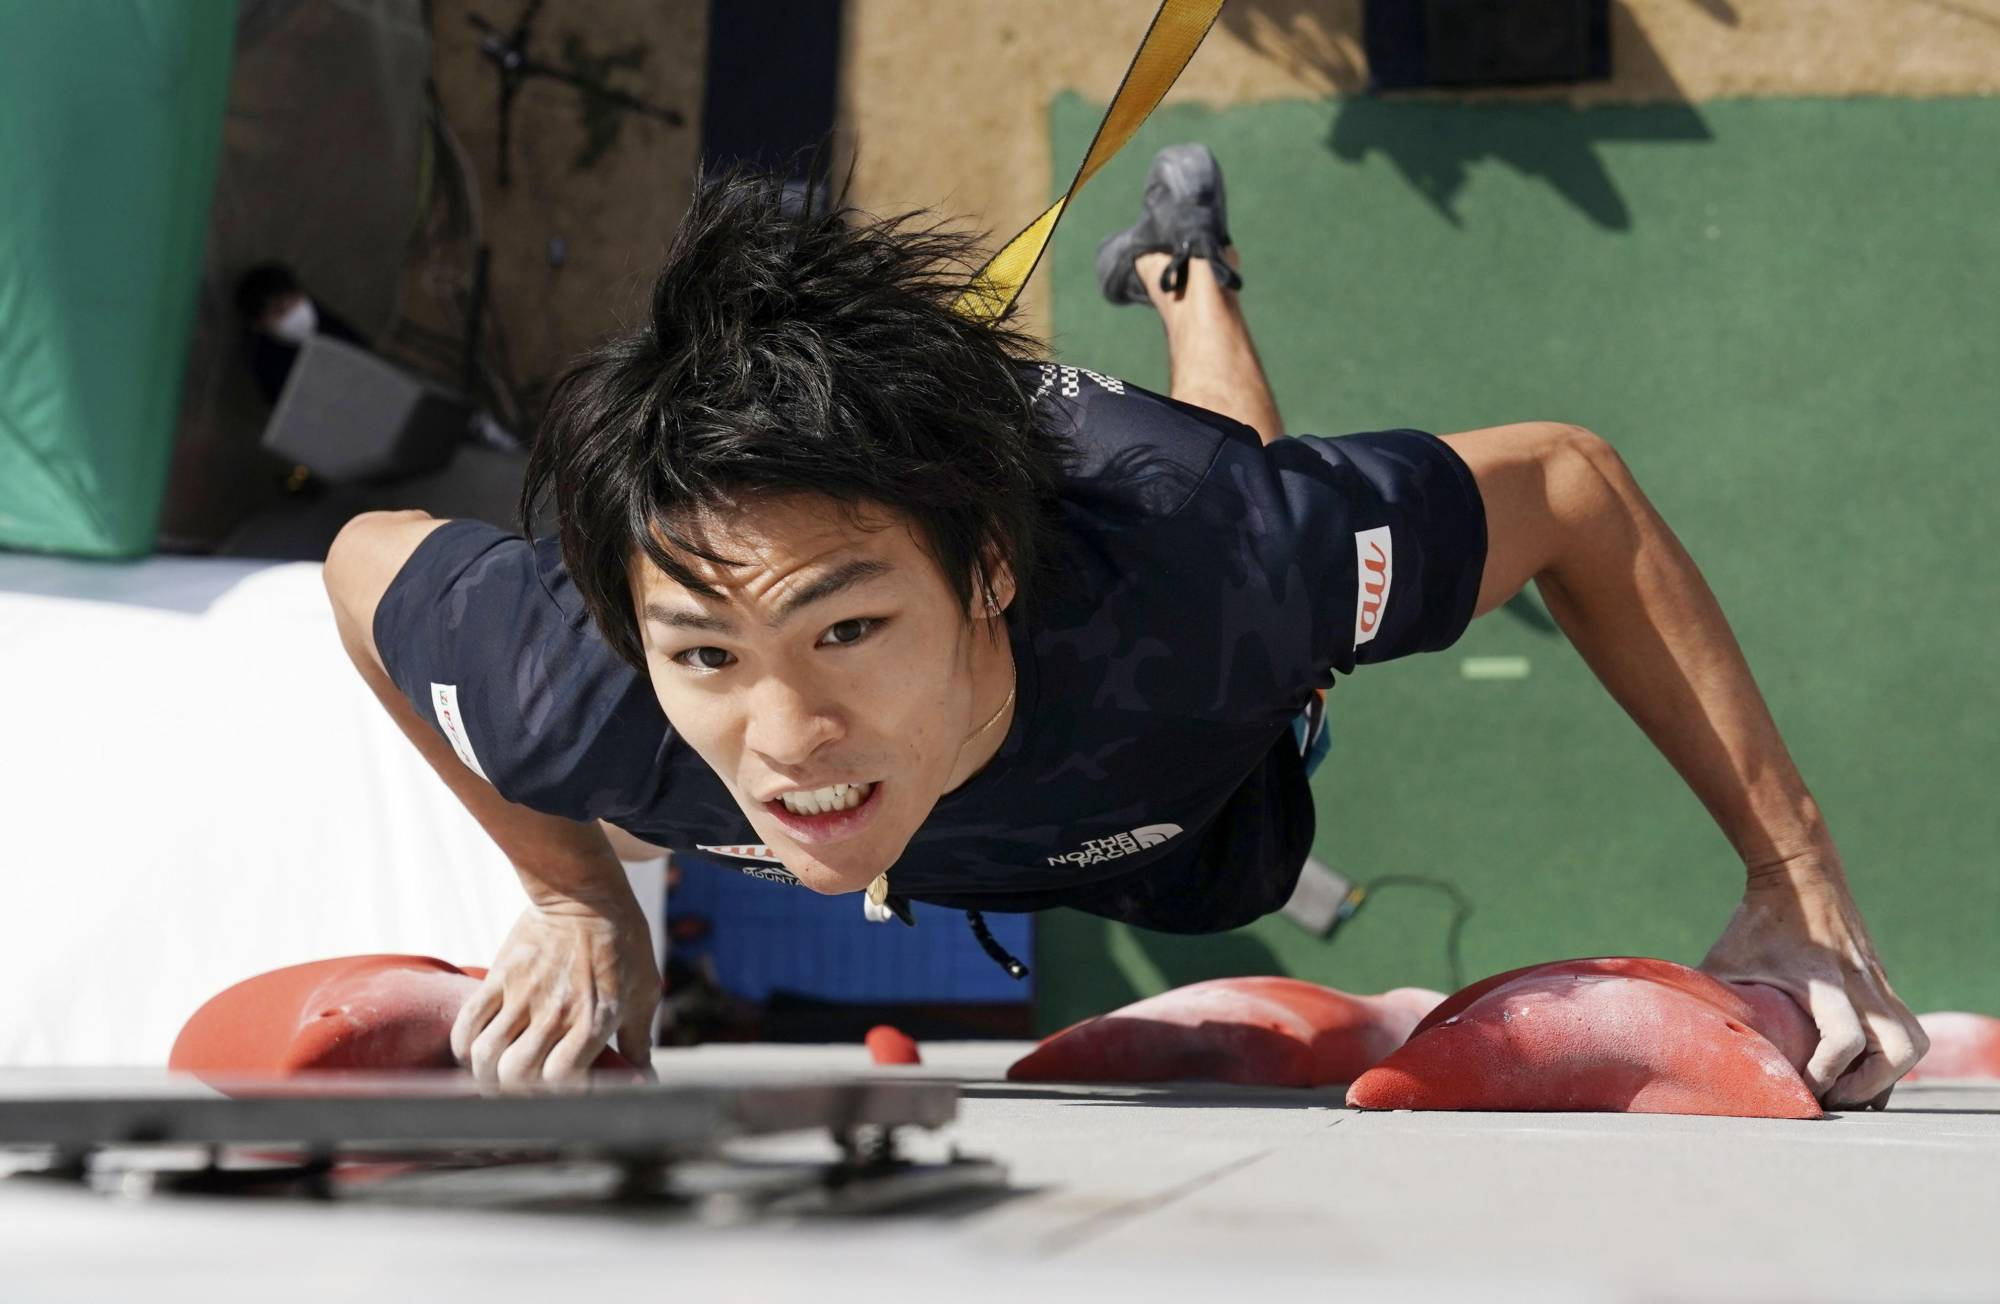 Reigning world champion Tomoa Narasaki had been looking forward to competing in the sport climbing event during the 2020 Tokyo Olympics this summer. The games have been delayed due to the COVID-19 pandemic. | KYODO